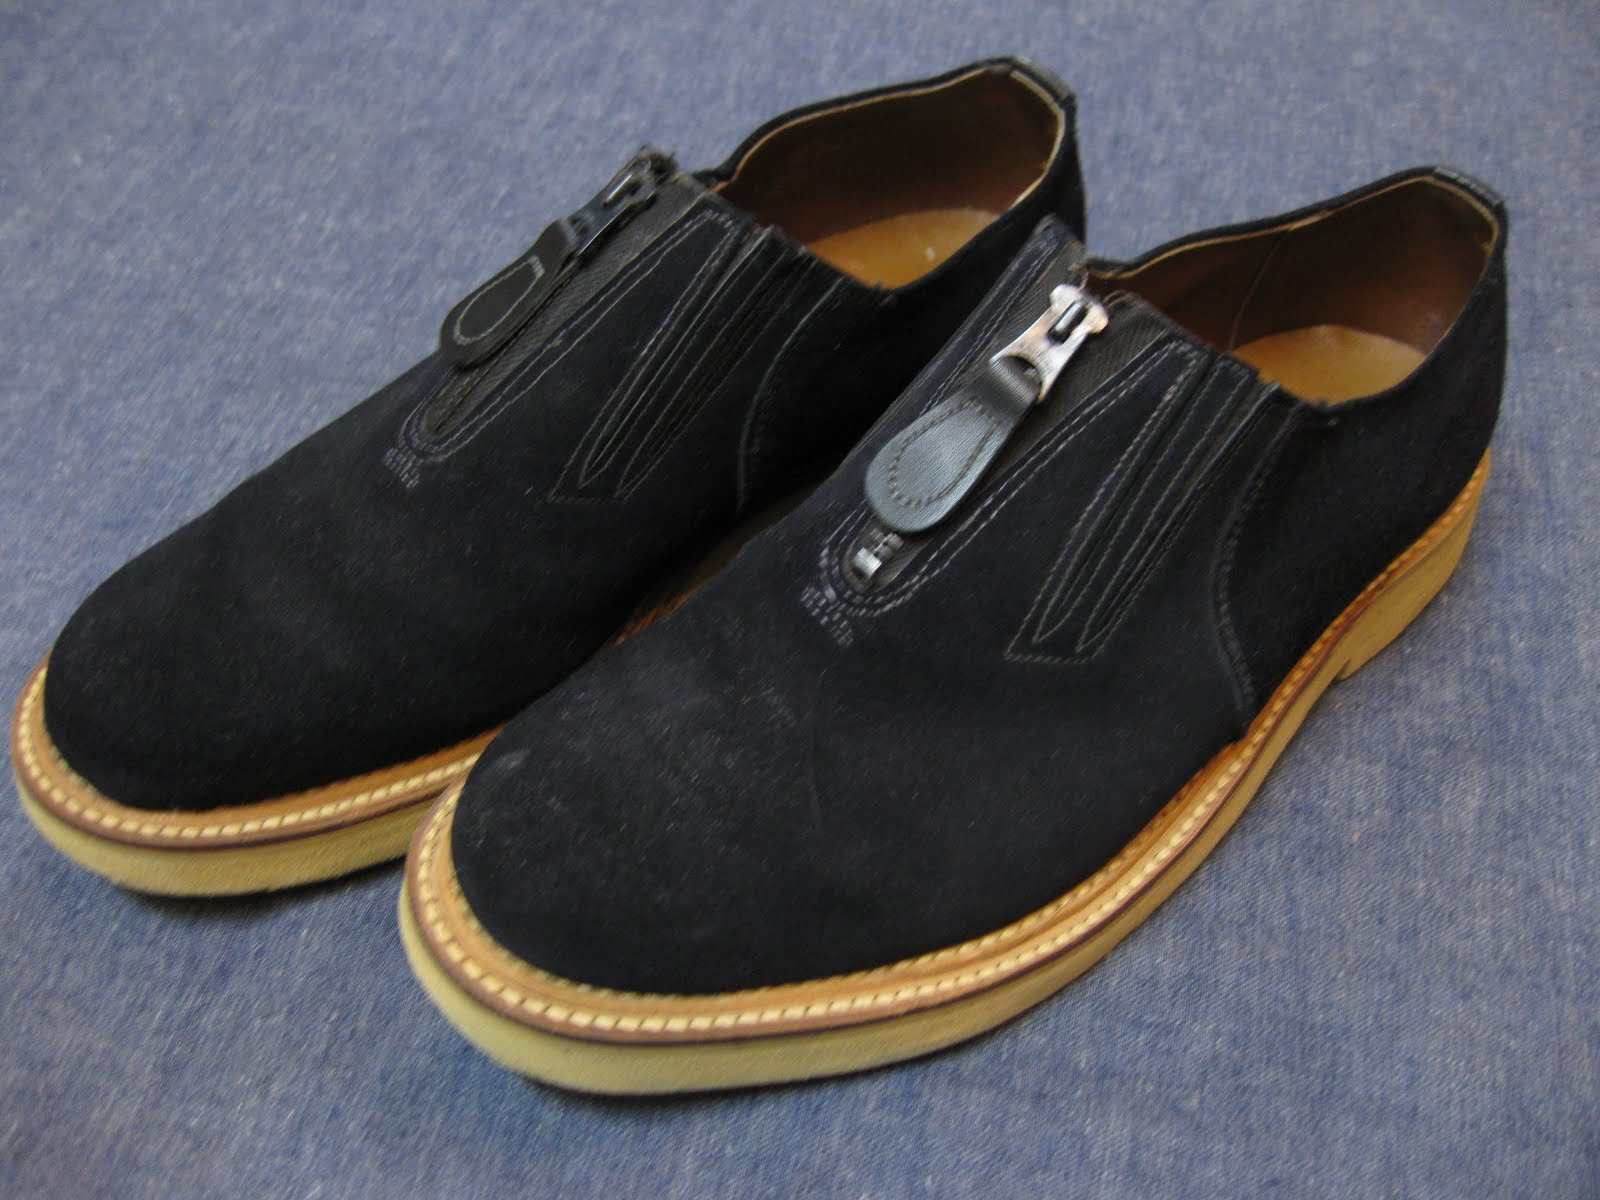 50's BLUE SUEDE SHOES               ダブル コバ               ENDICOTT JOHNSON CO.                SOLD